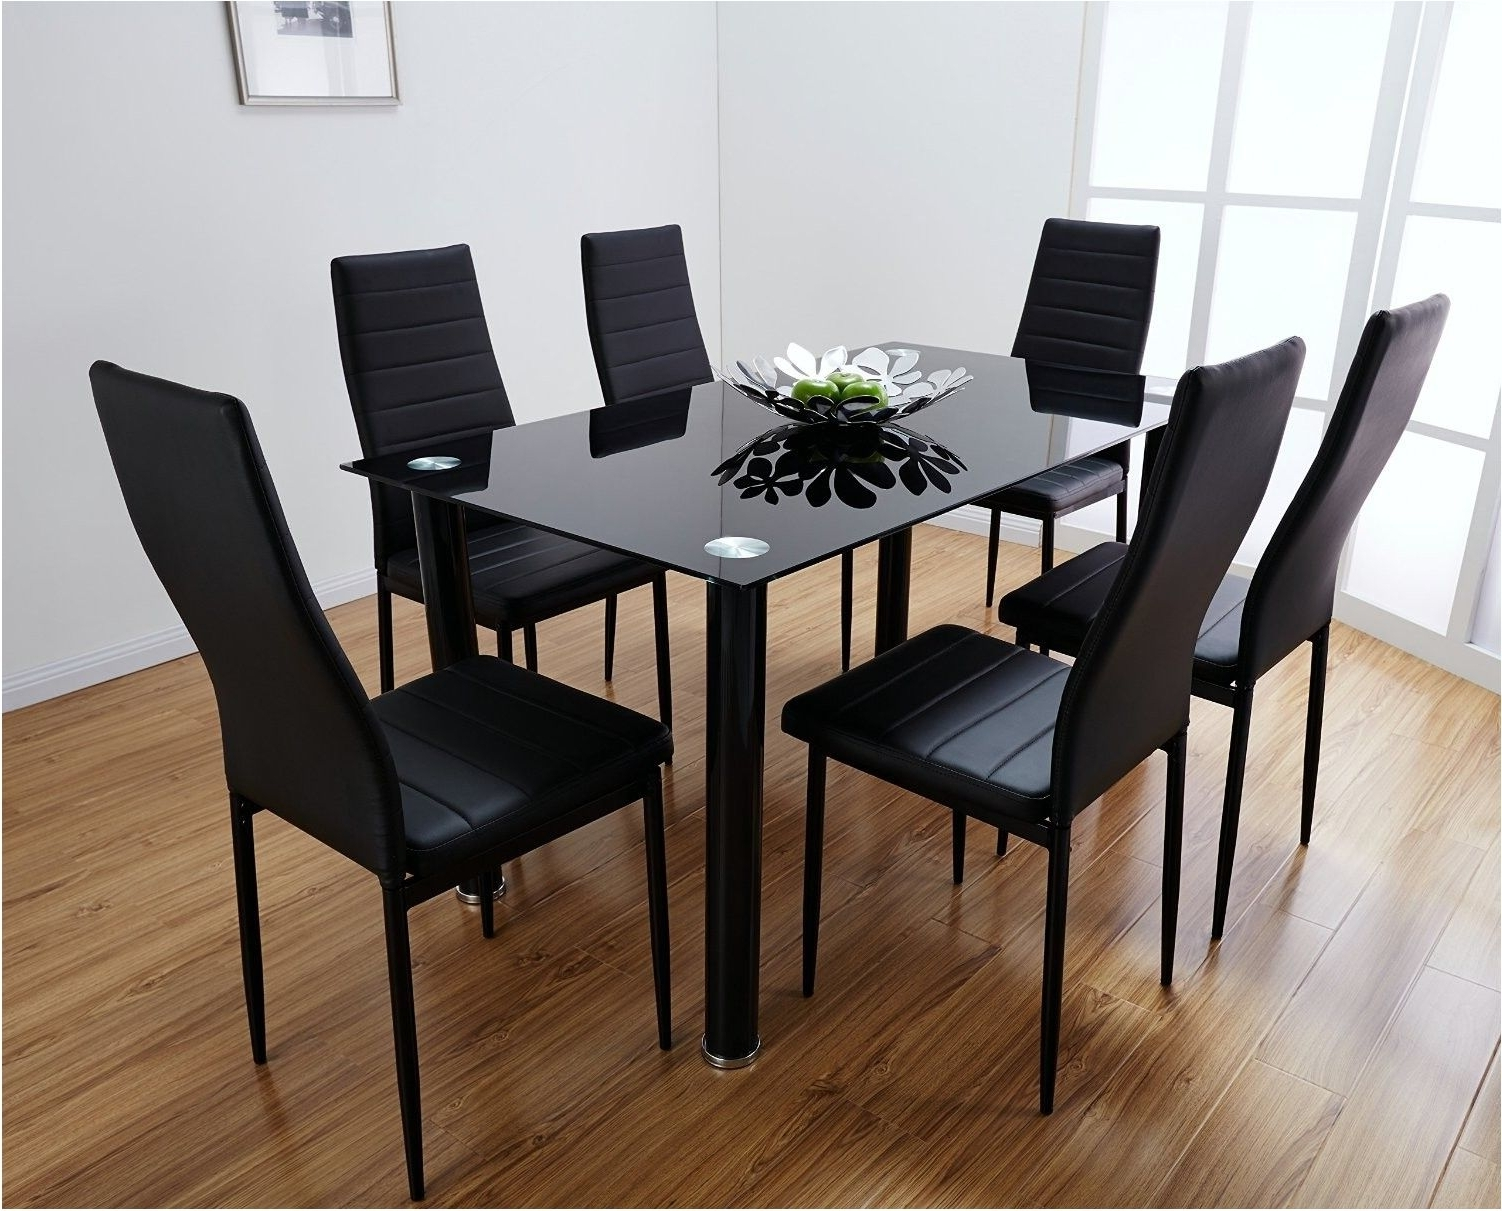 Fashionable Incredible Black Glass Dining Table Set With 4 Faux Leather Chairs Regarding Glass Dining Tables And Leather Chairs (View 5 of 25)